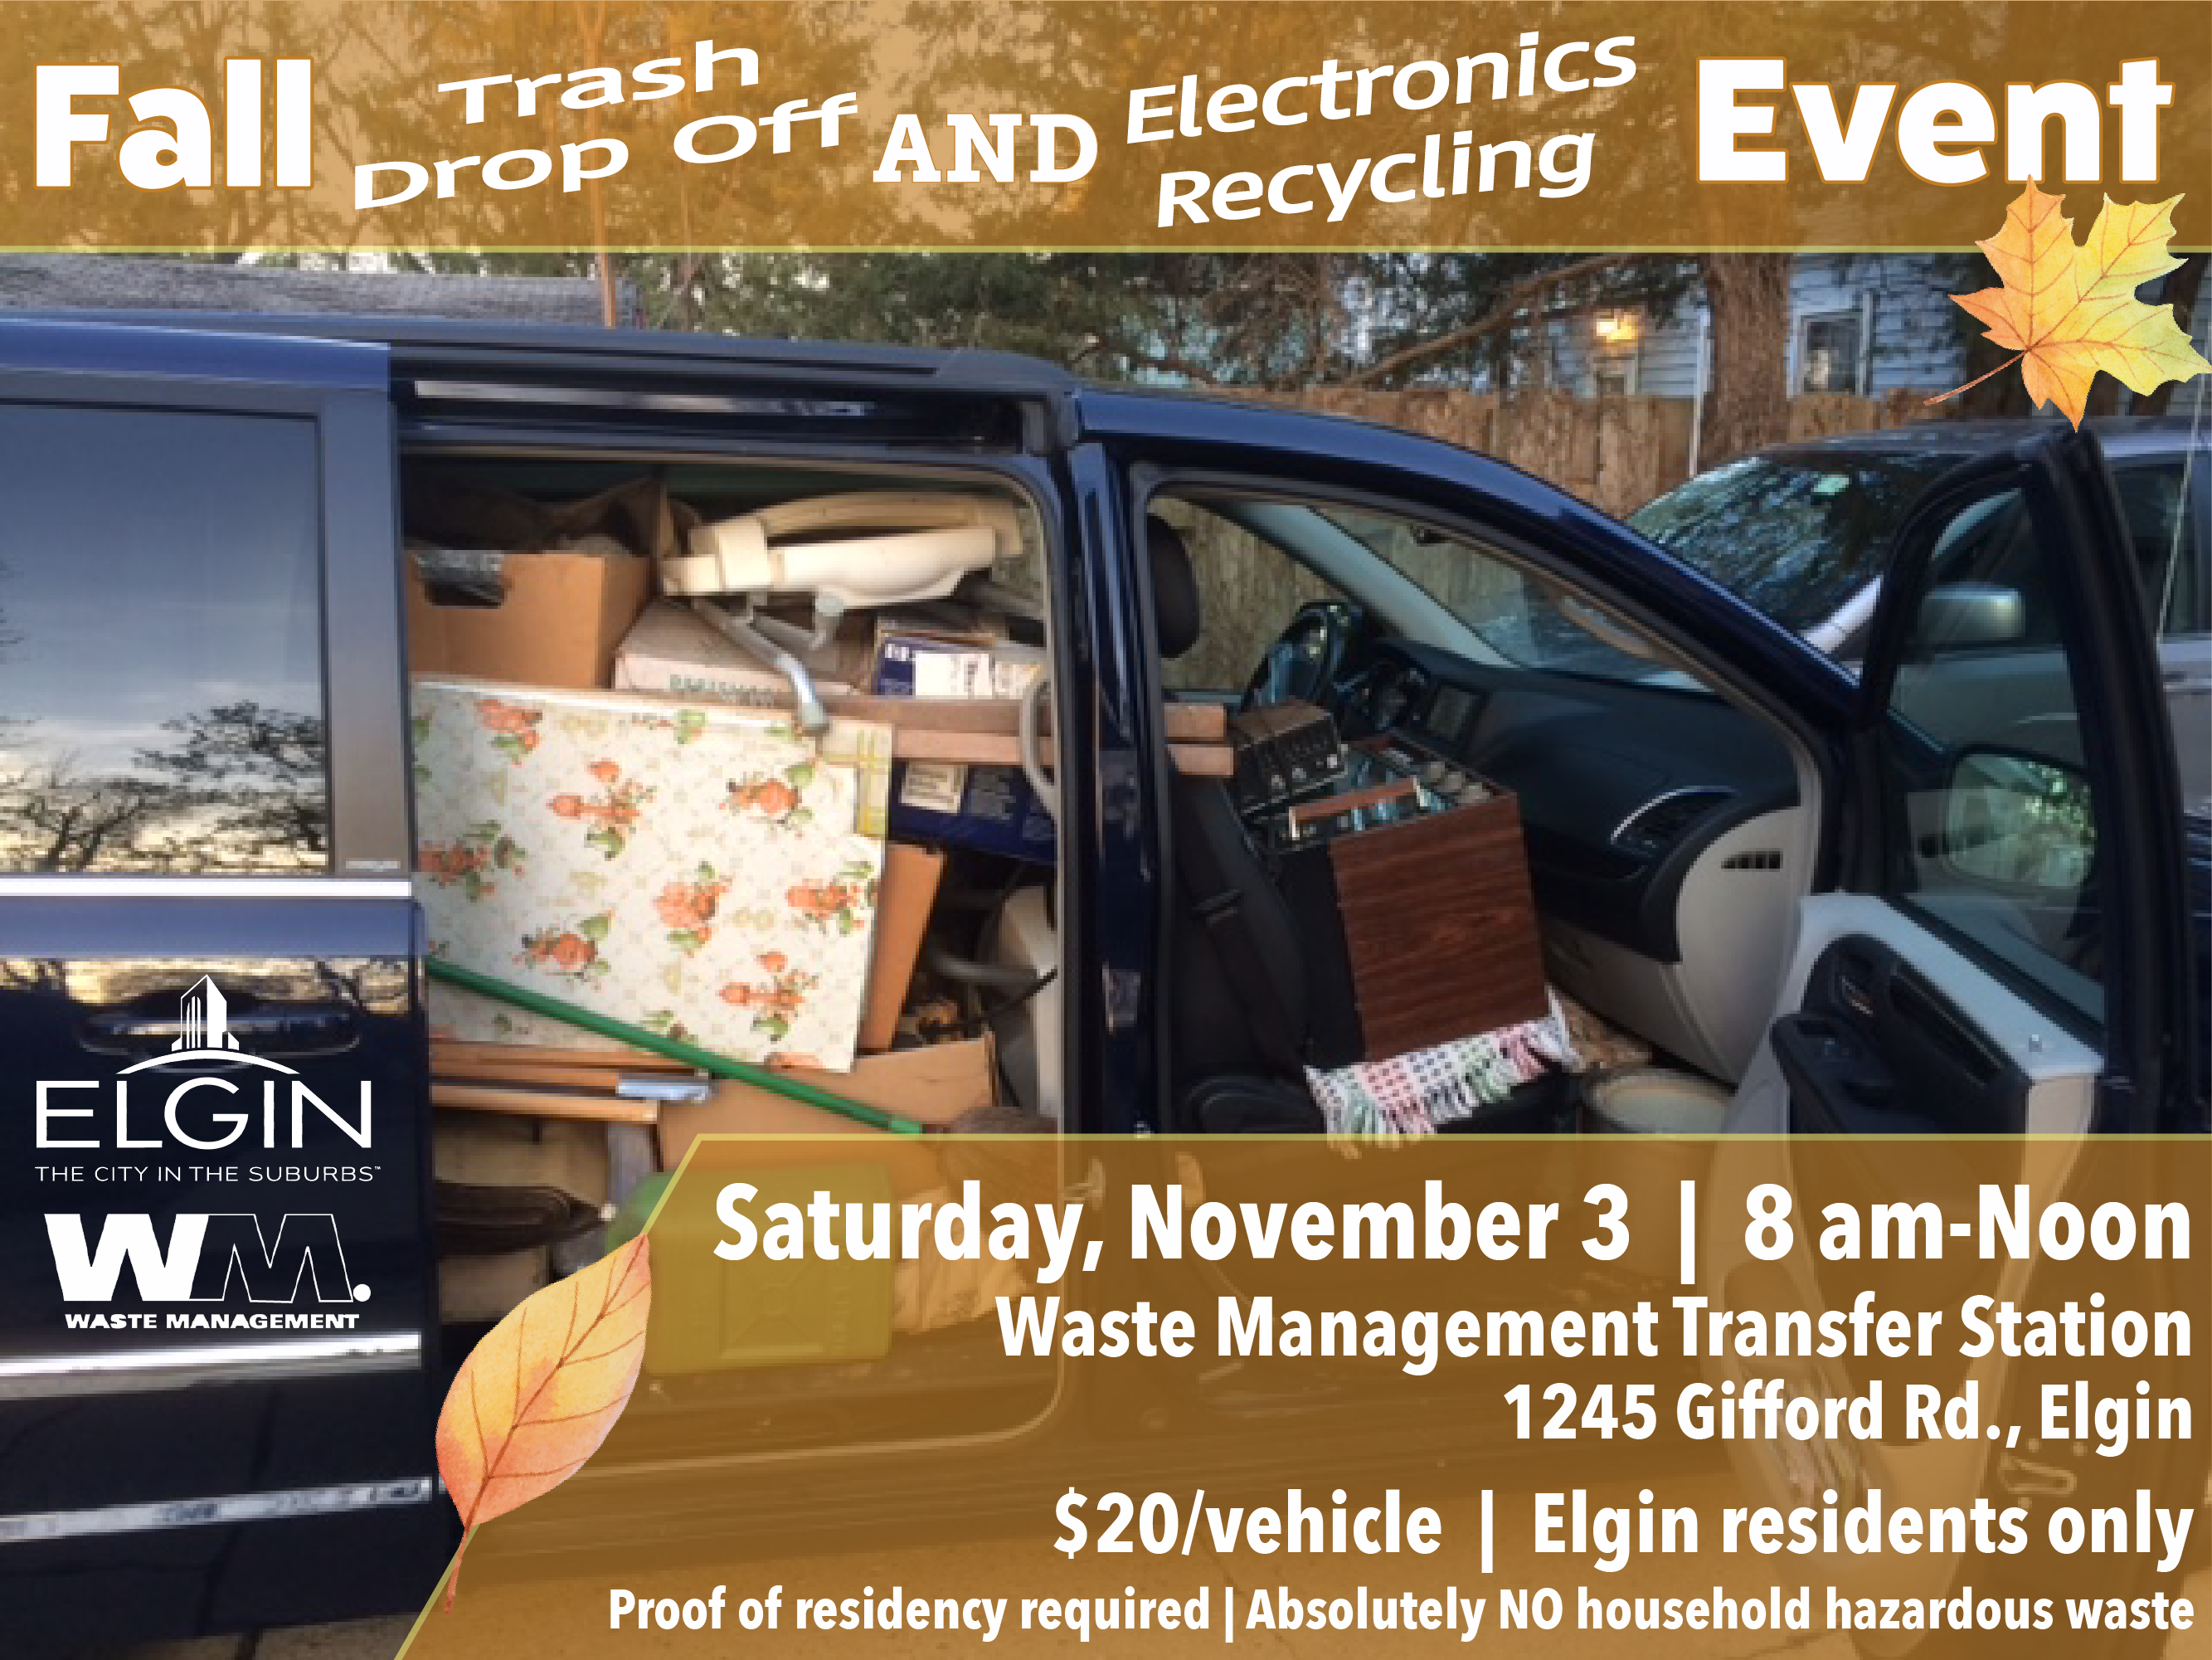 picture of van packed with household waste and electronics for drop off event